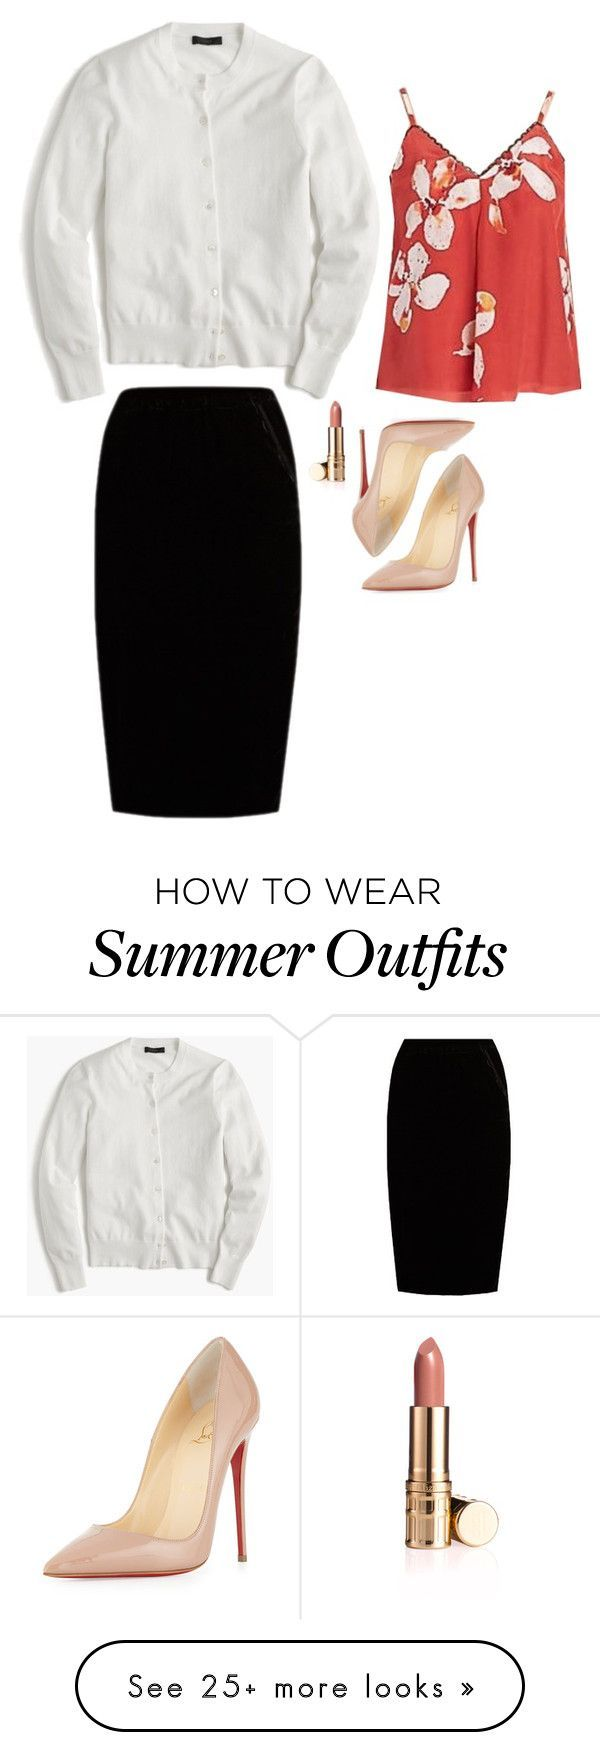 "Summer Outfits : ""Caroline Forbes Inspired Outfit"" by daniellakresovic on Polyvore feat"